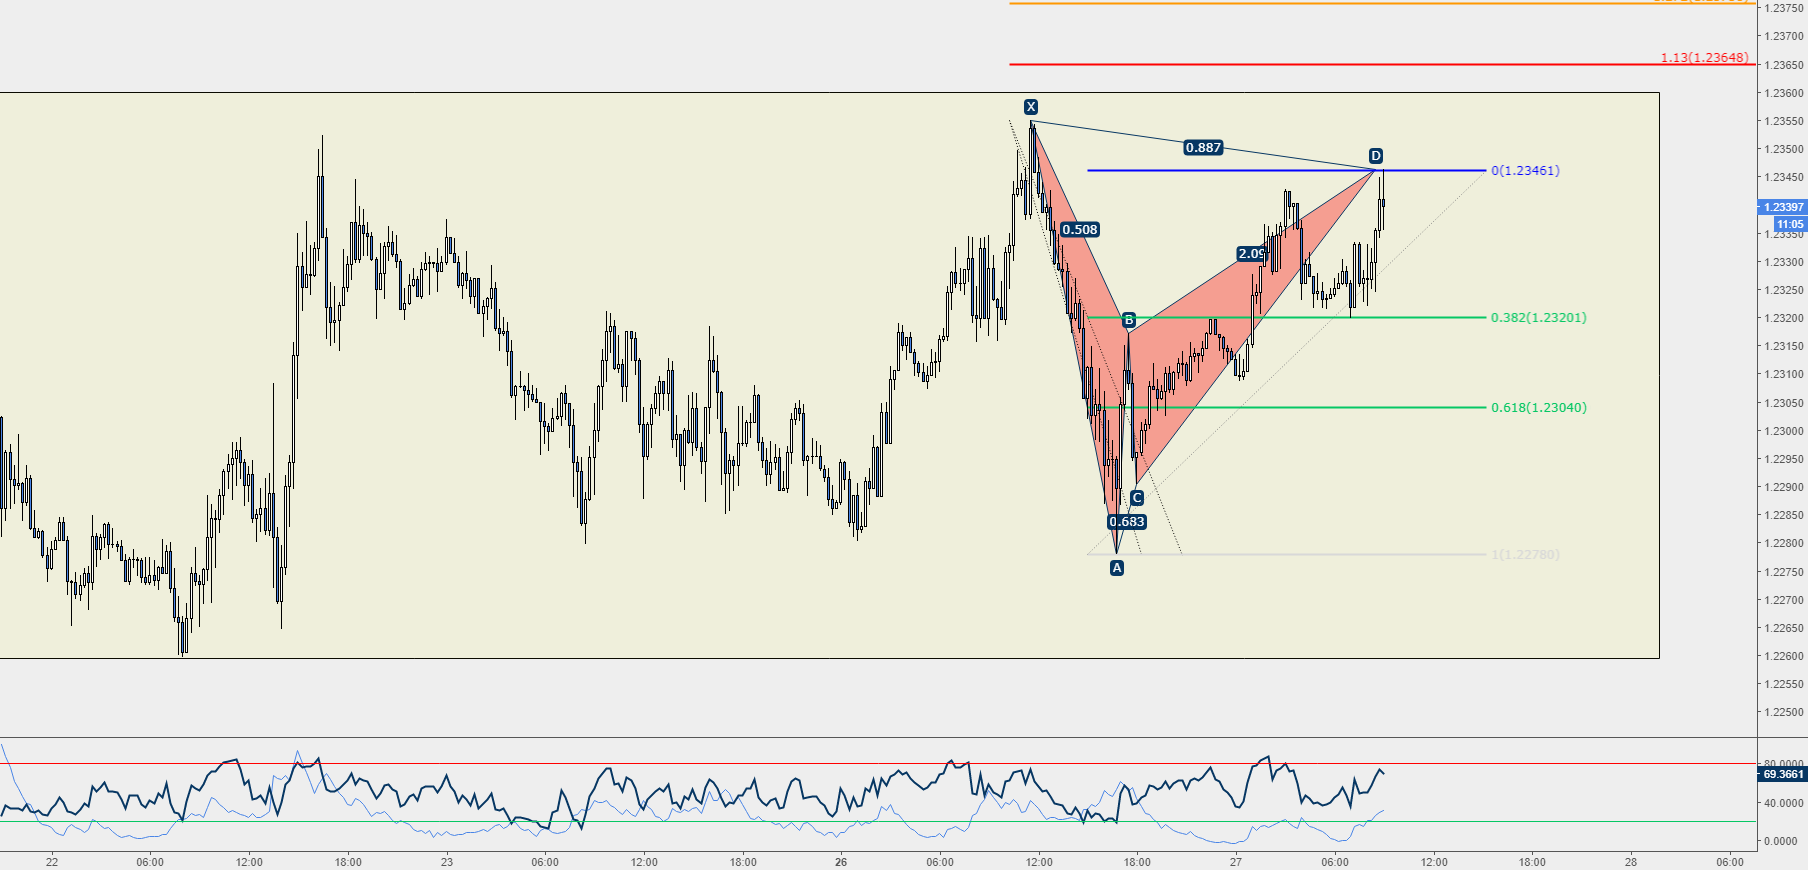 EUR/USD Parte 2 - Altro Bat Pattern in Completamento